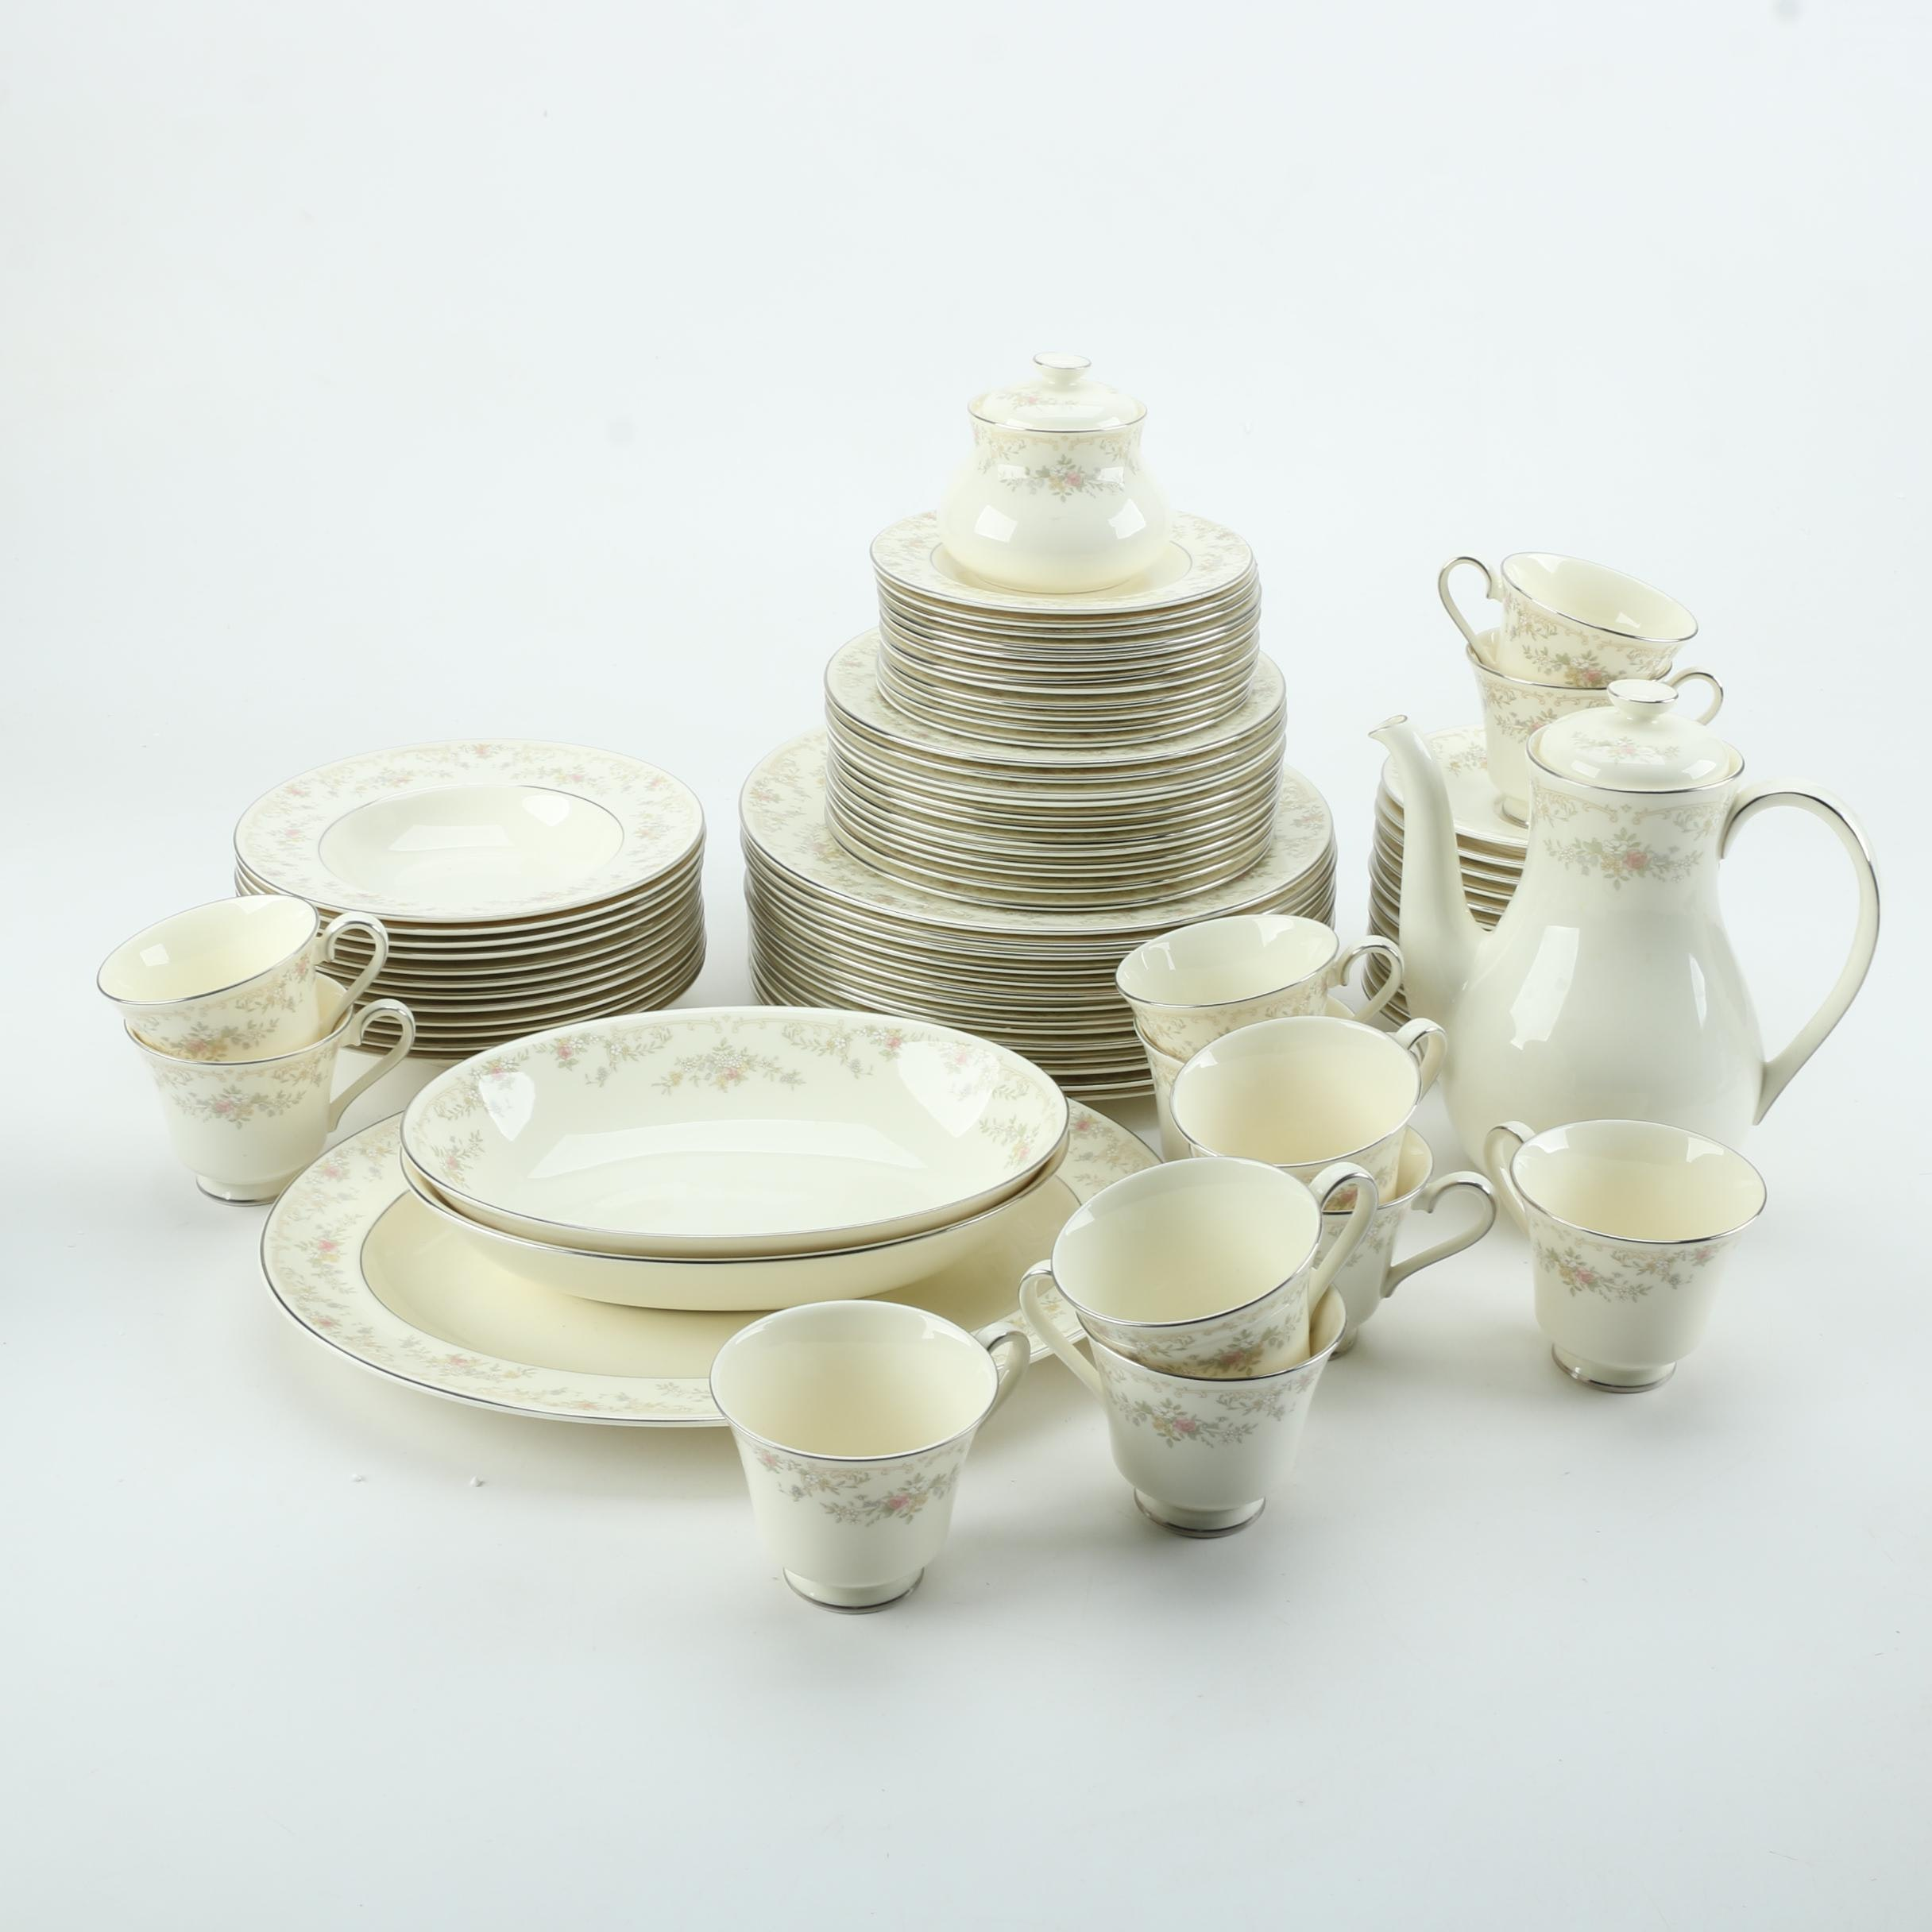 Royal Doulton  Diana  Porcelain Tableware 1981 ... & Royal Doulton